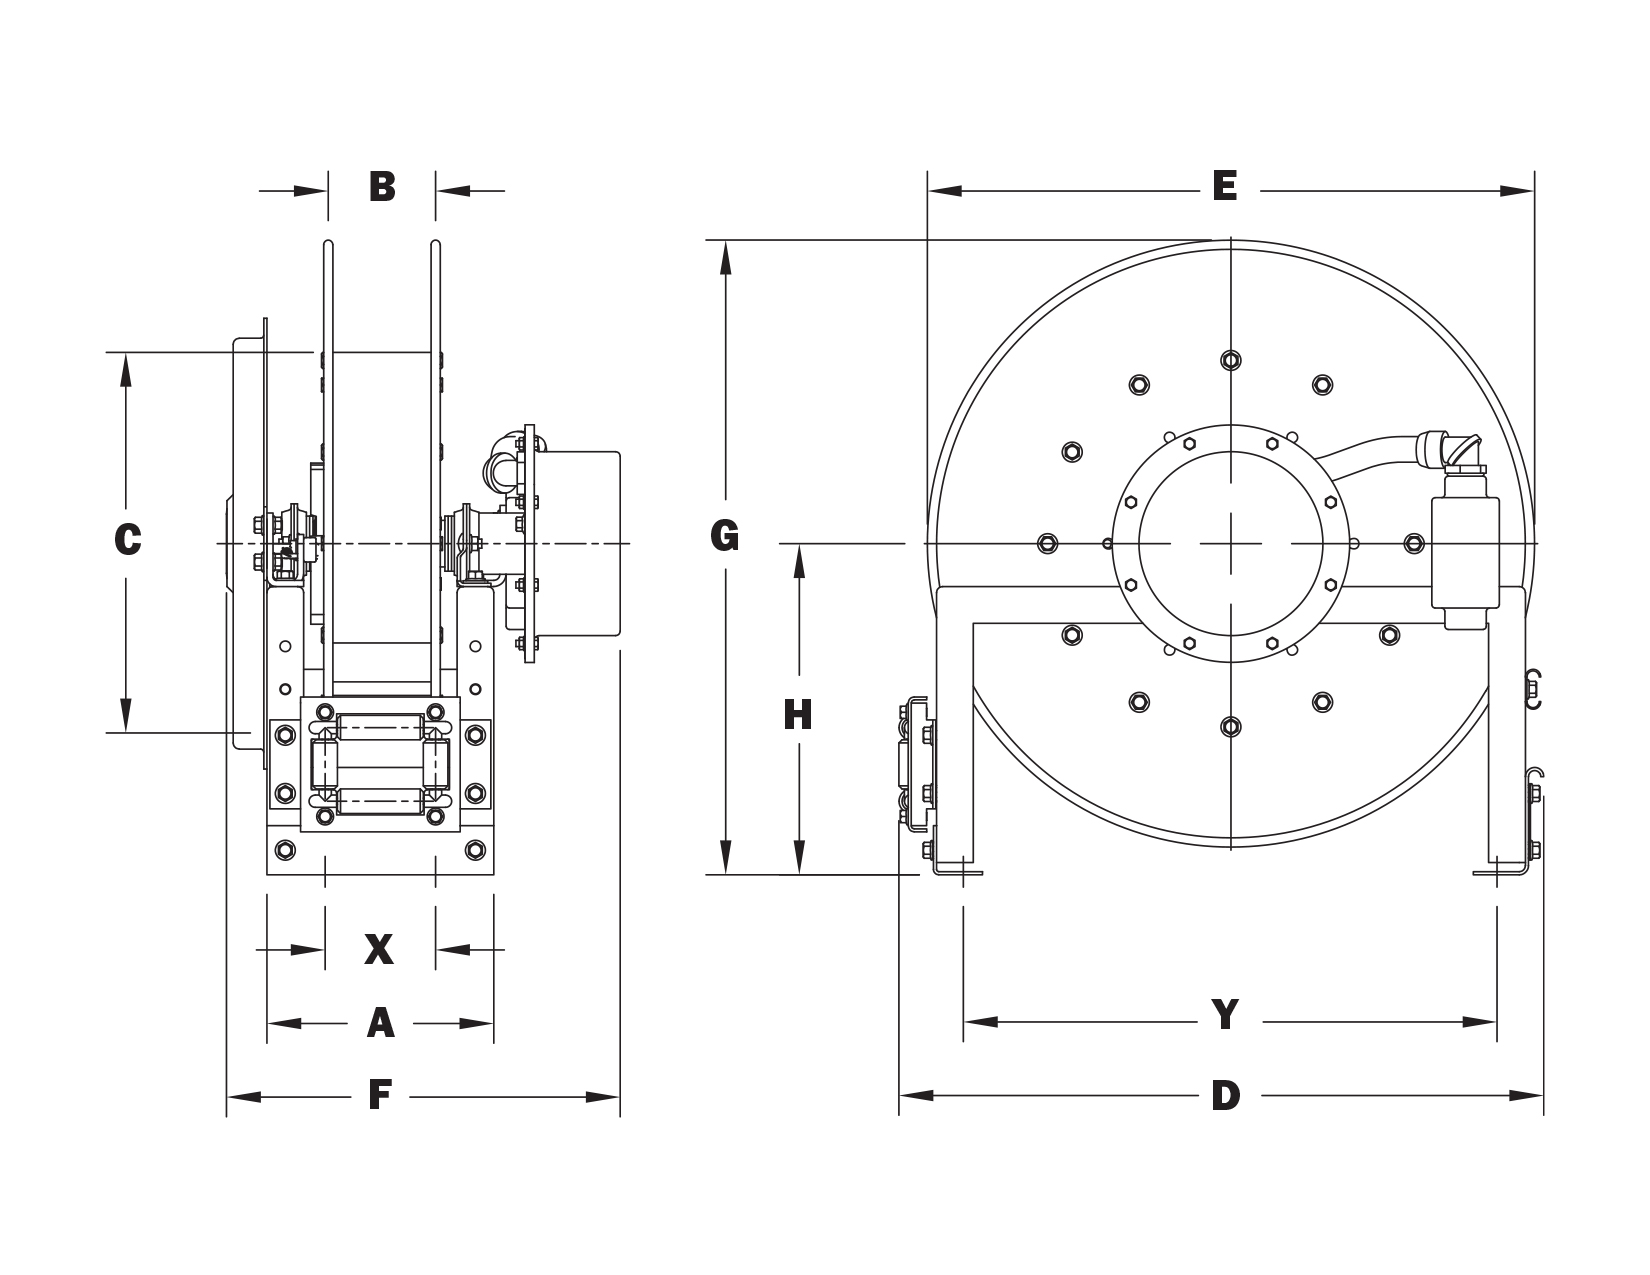 SCR700 Schematic_1494598471 scr700 series hannay reels official site hannay reel wiring diagram at panicattacktreatment.co